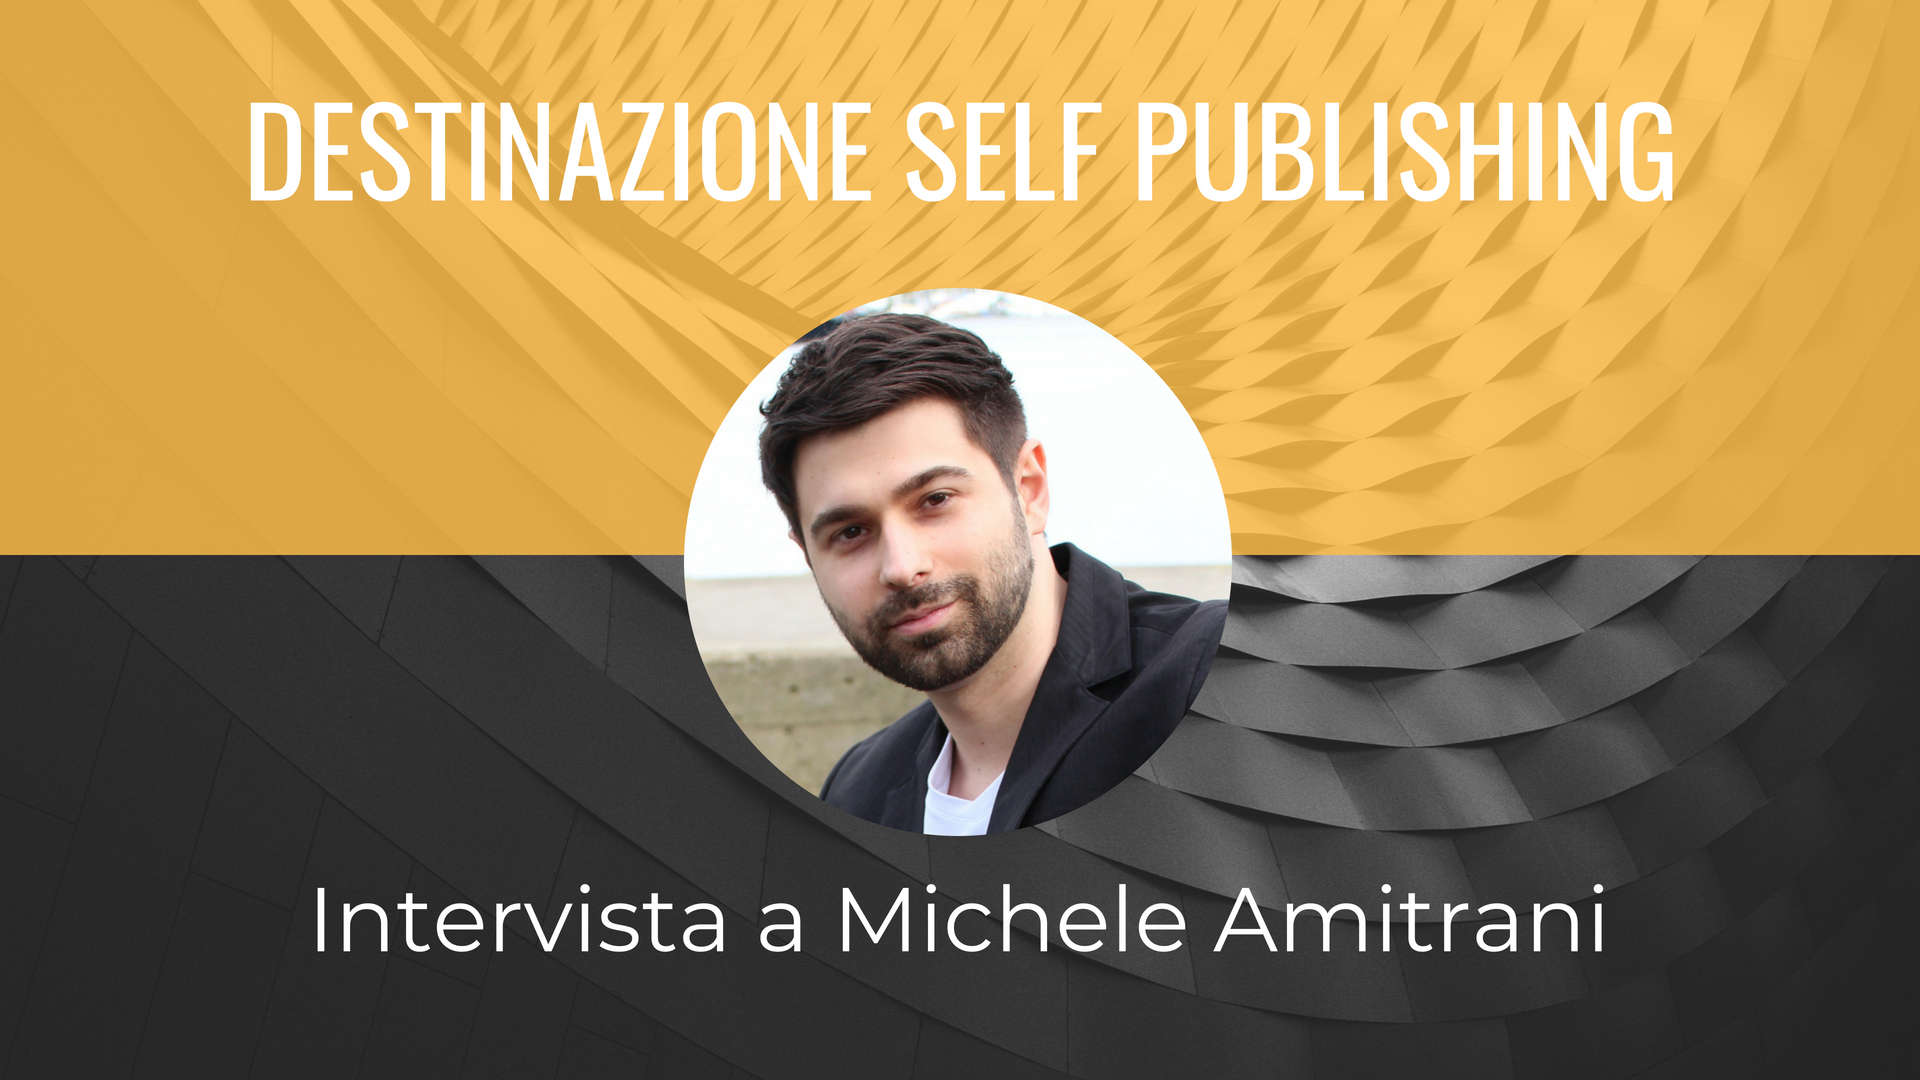 Destinazione Self Publishing - Intervista a Michele Amitrani